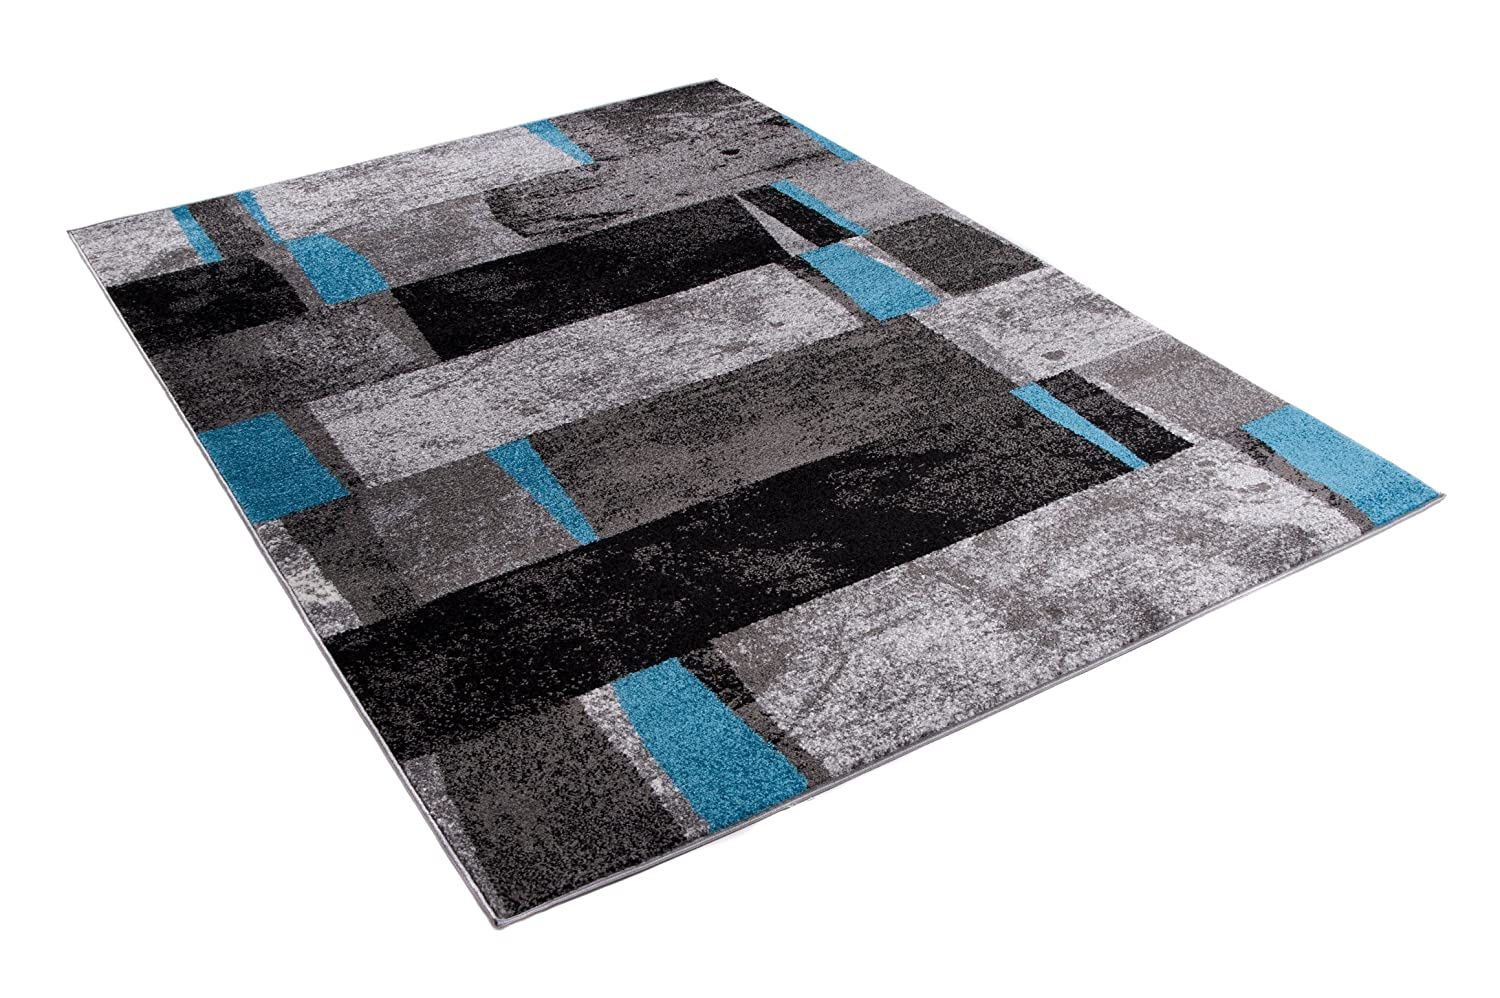 Jawa Collection Size 2ft7 x 4ft11 Tapiso Area Rugs For Living Room Bedroom Grey Blue Modern Contemporary Pattern Durable Carpet Trendy Interior 80 x 150 cm